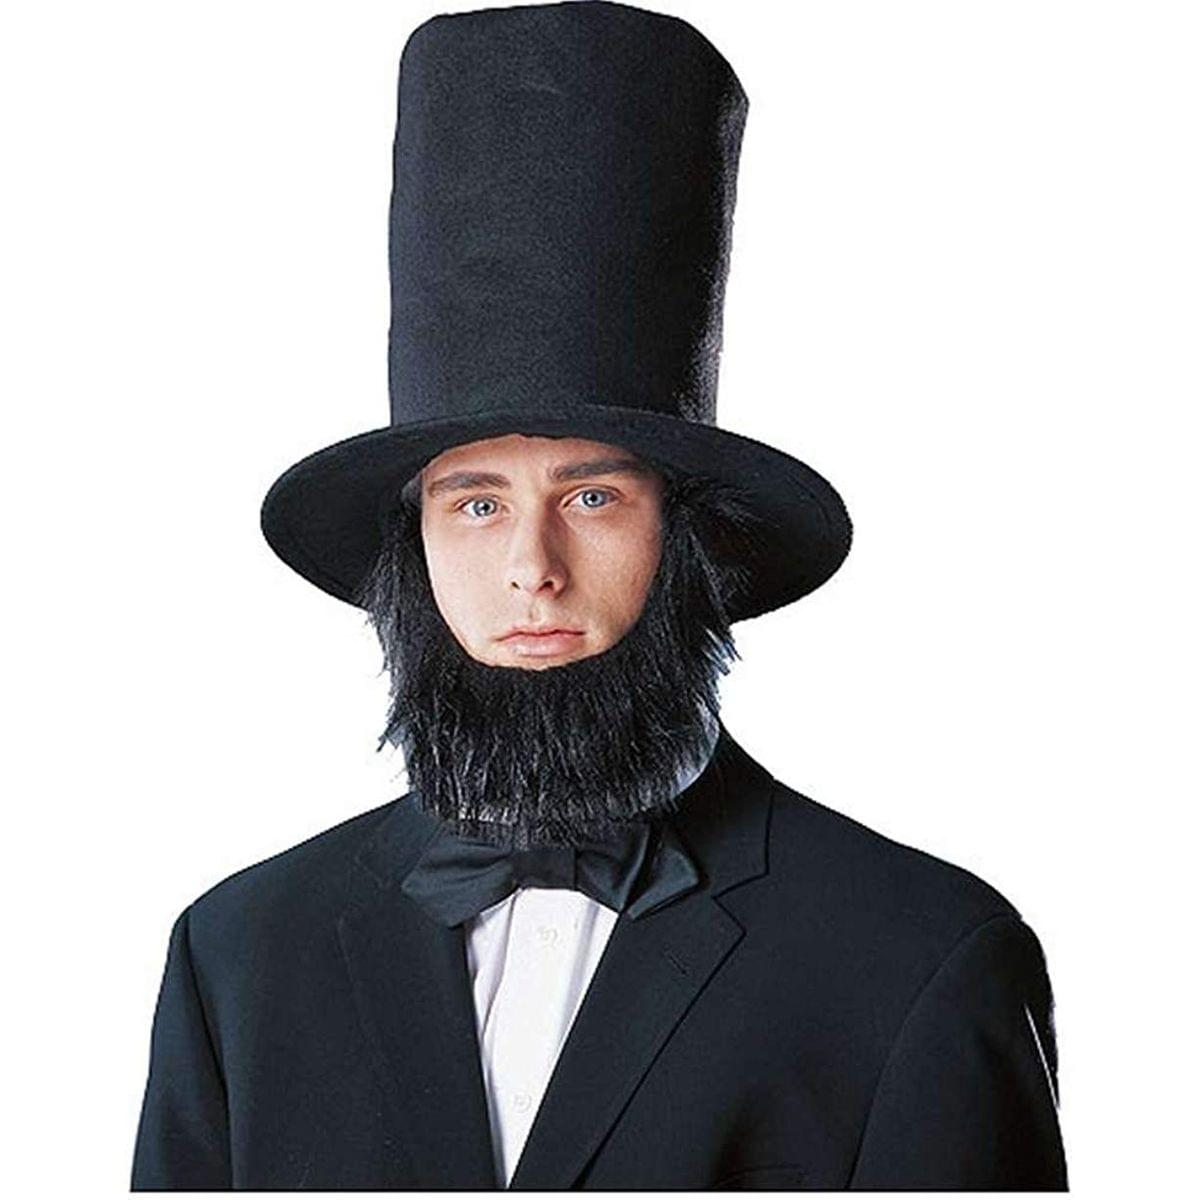 Abraham Lincoln Men's Costume Hat with Beard - Black